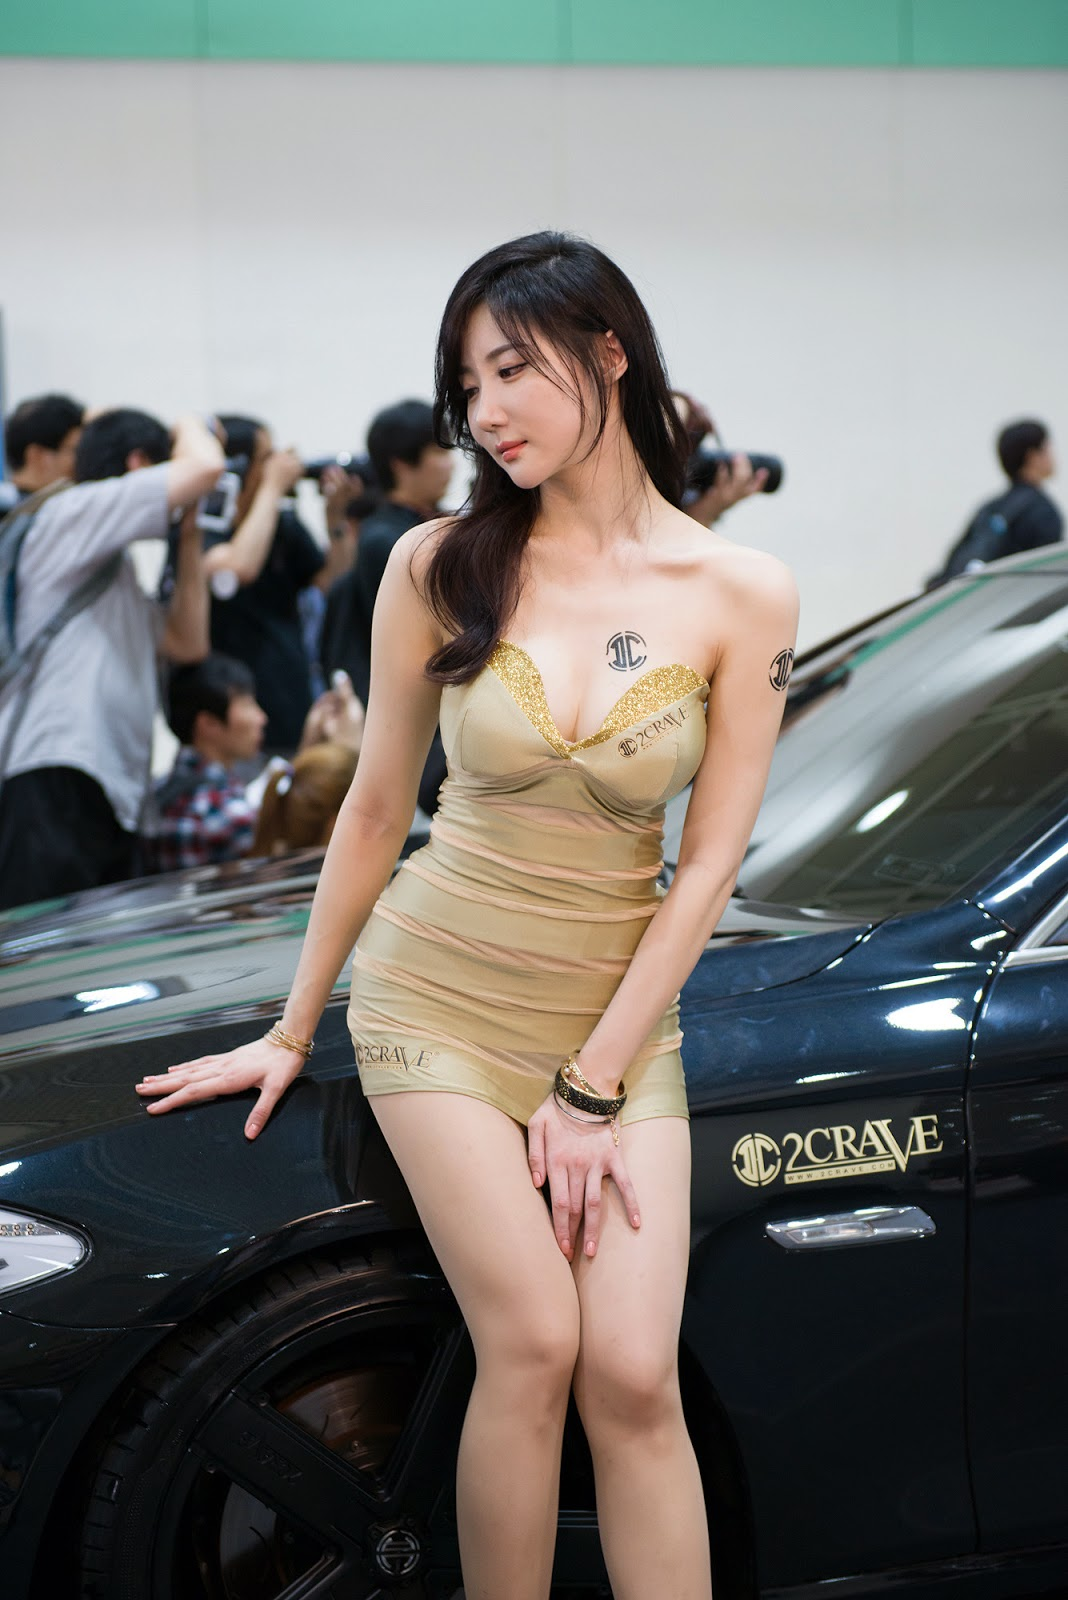 3 Yeon Da Bin - Seoul Auto Salon 2014 - very cute asian girl-girlcute4u.blogspot.com